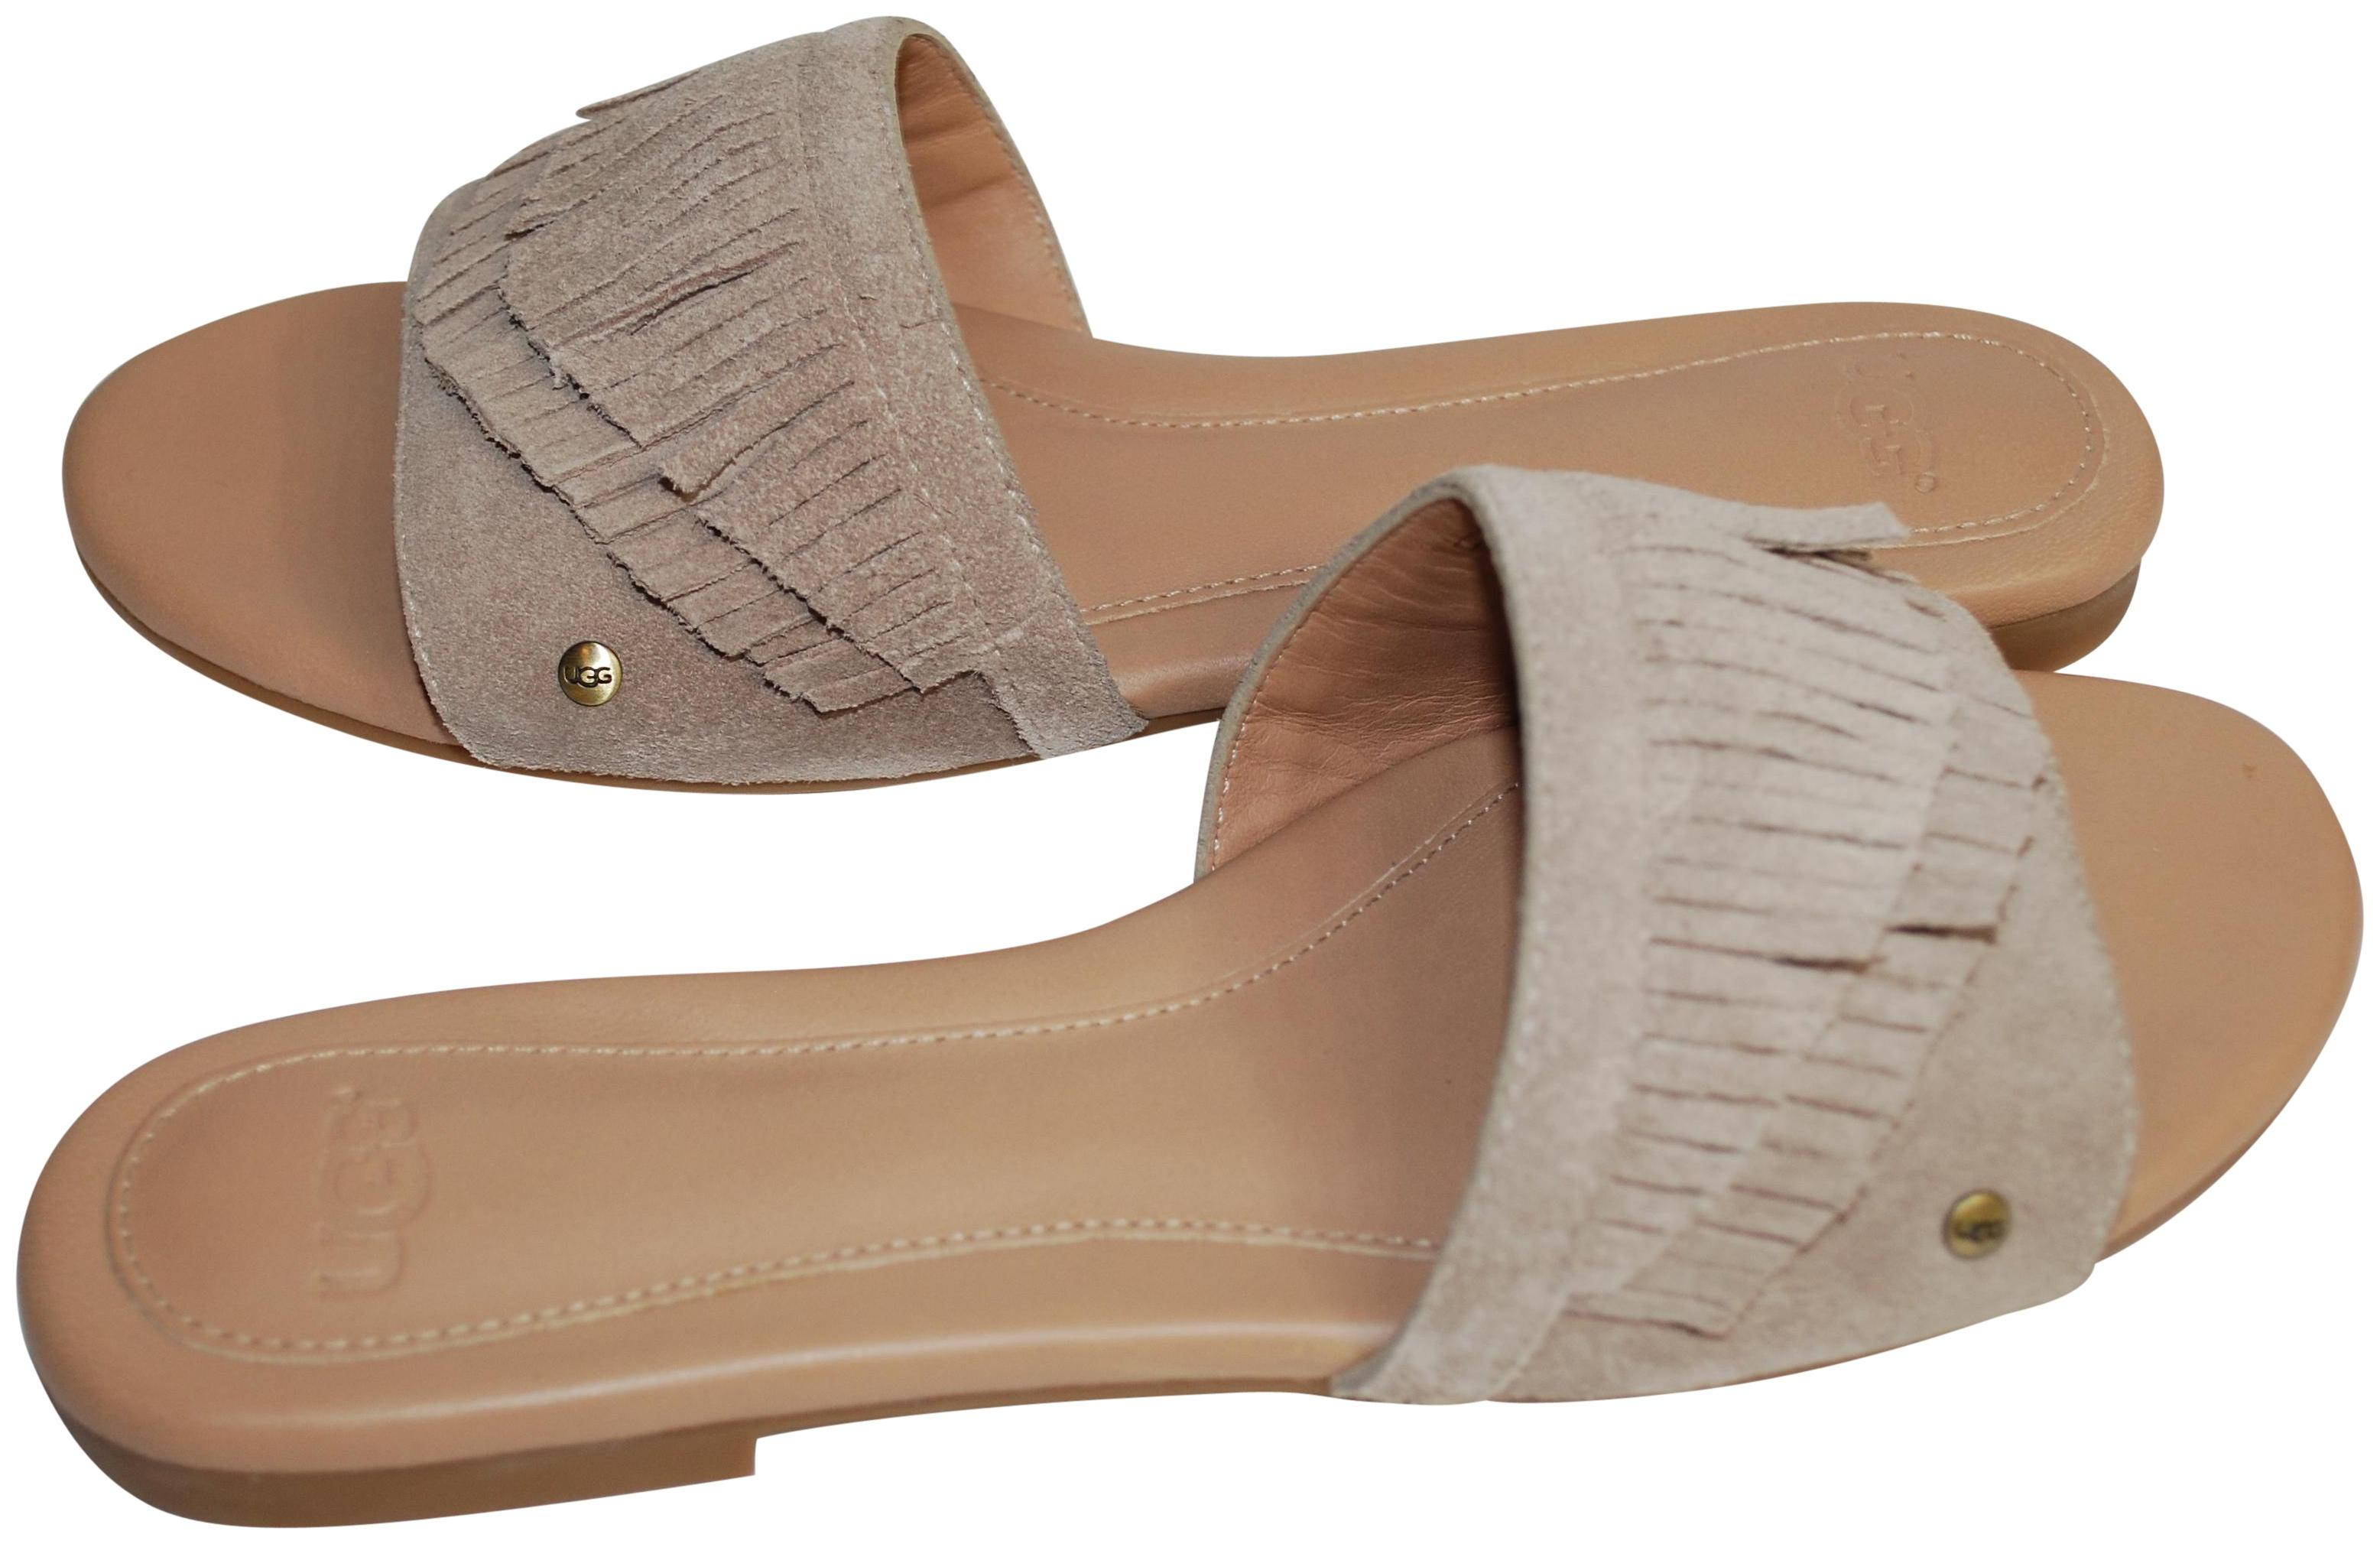 UGG Australia Rubber Thong Sandals release dates sale 2015 free shipping recommend geniue stockist for sale xWJIQK